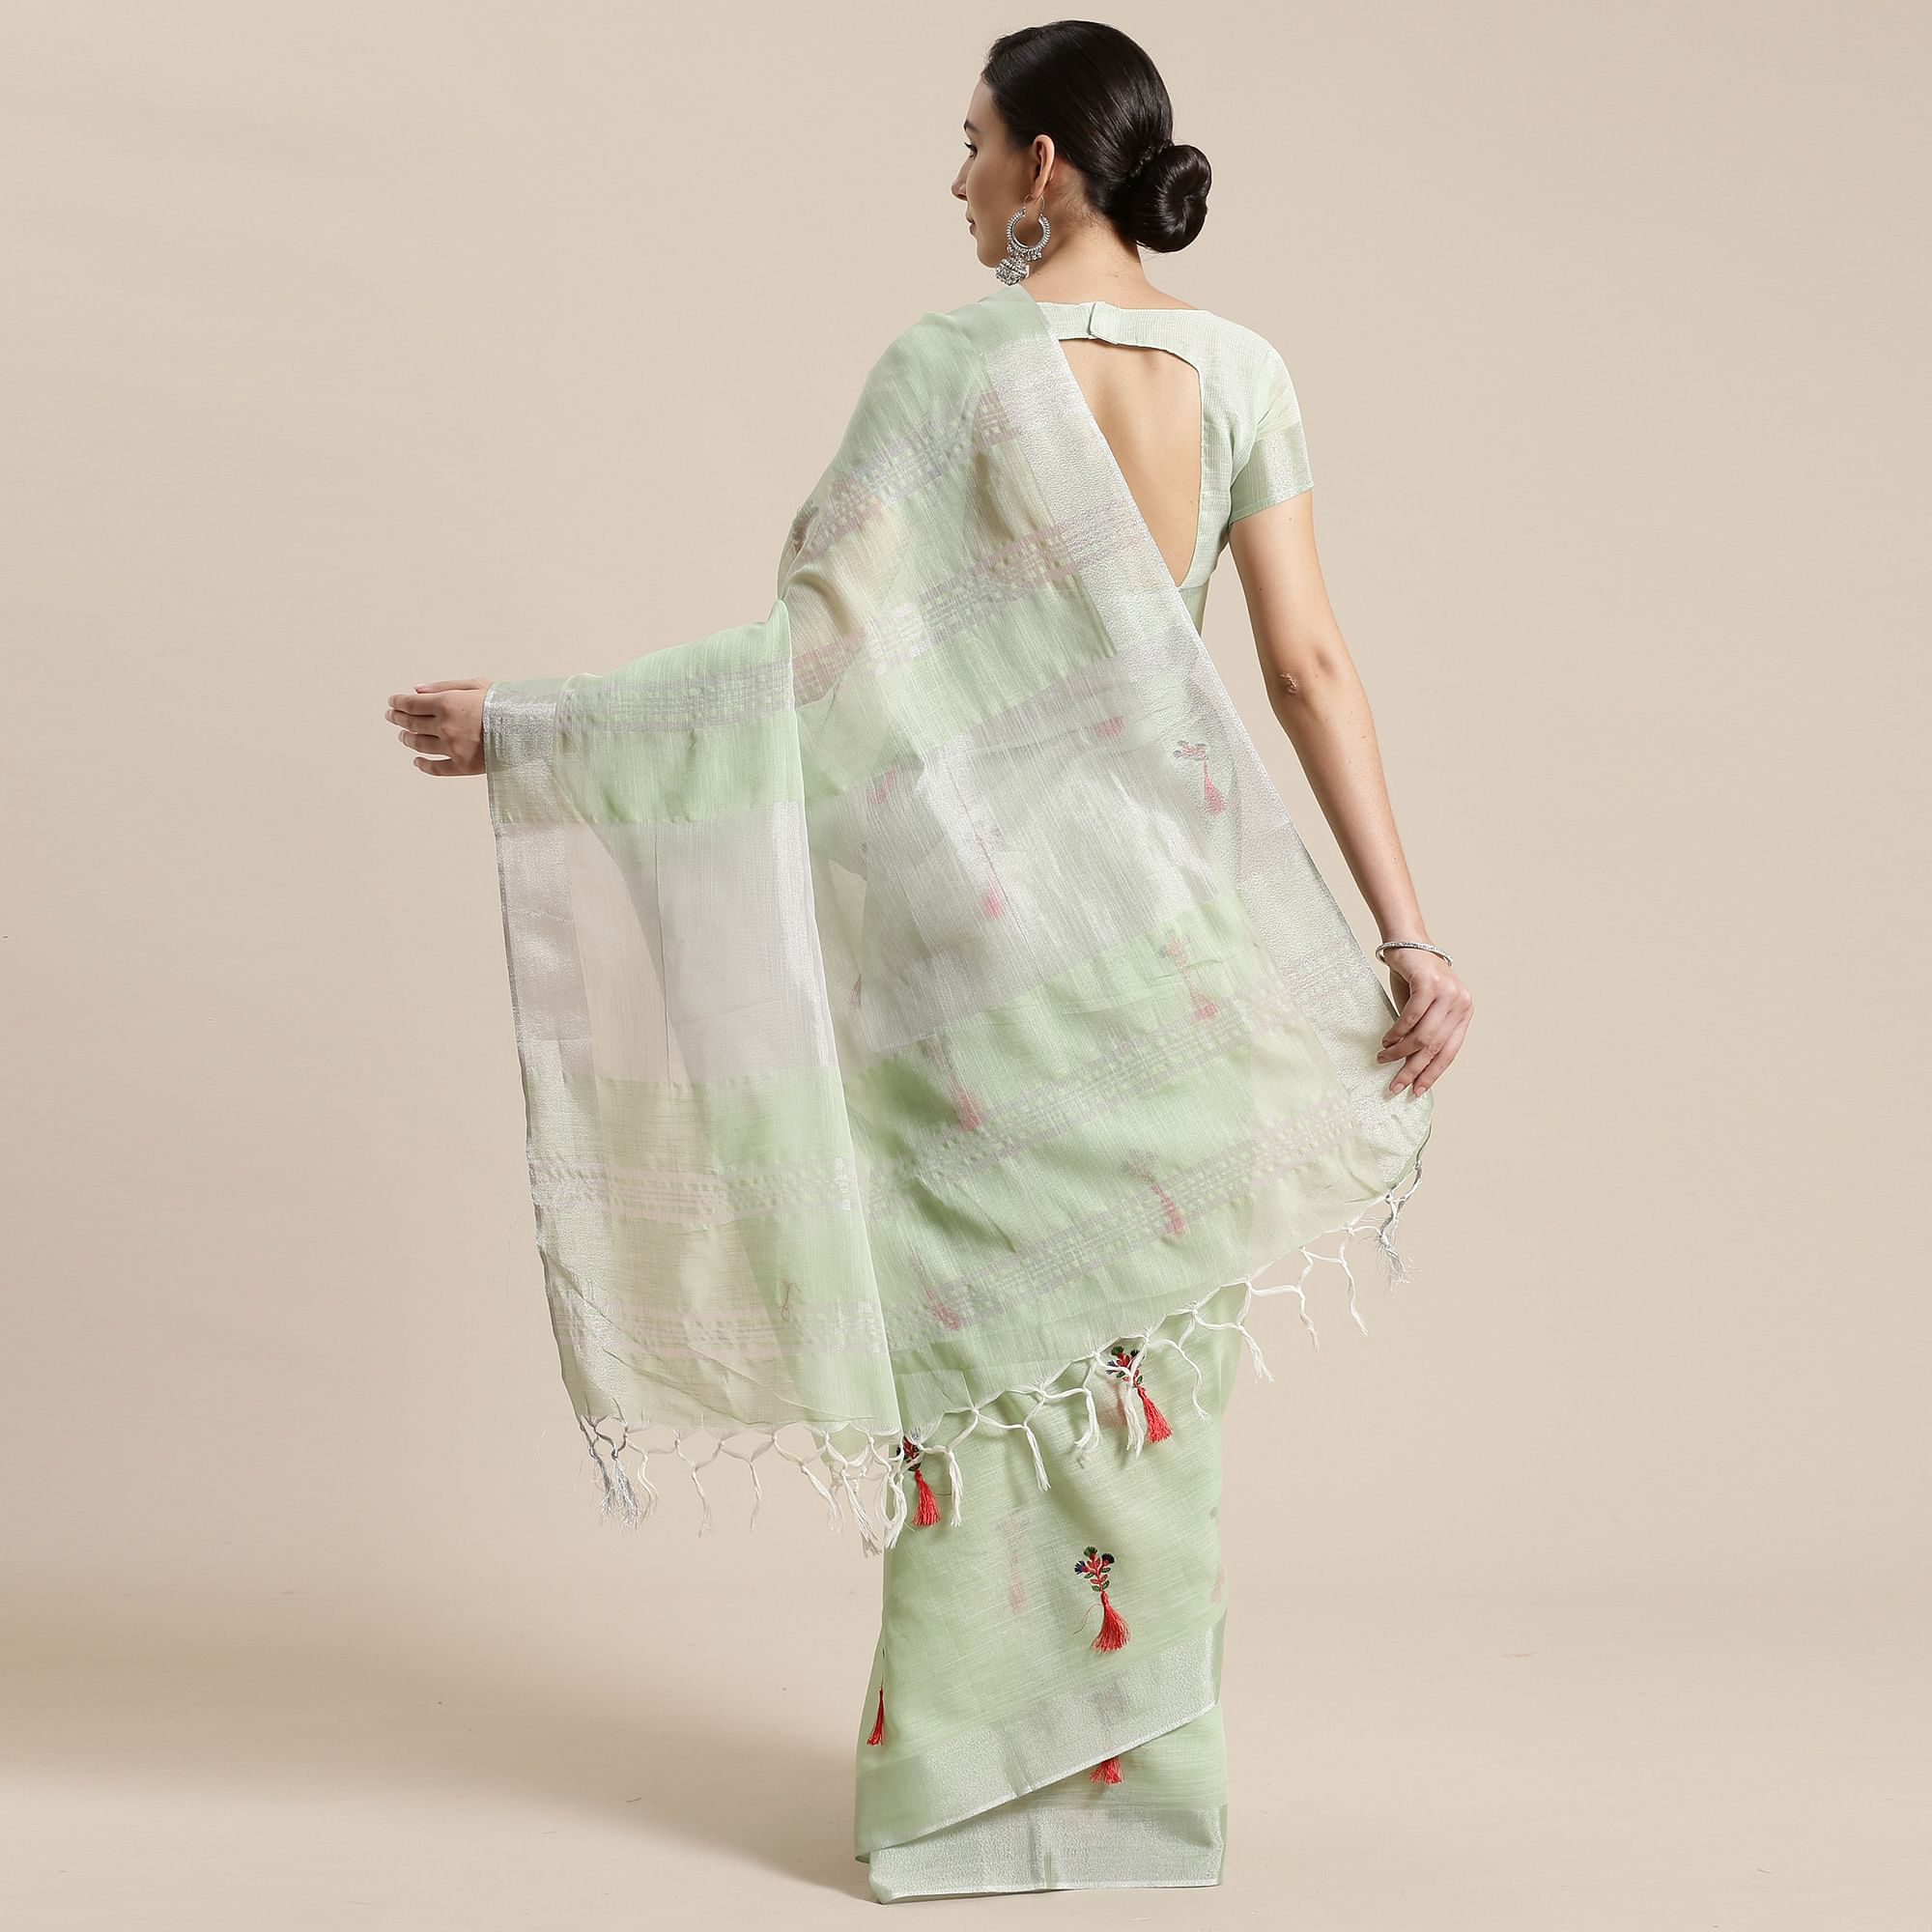 Desirable Light Green Colored Festive Wear Floral Embroidered Linen Blend Saree With Tassels